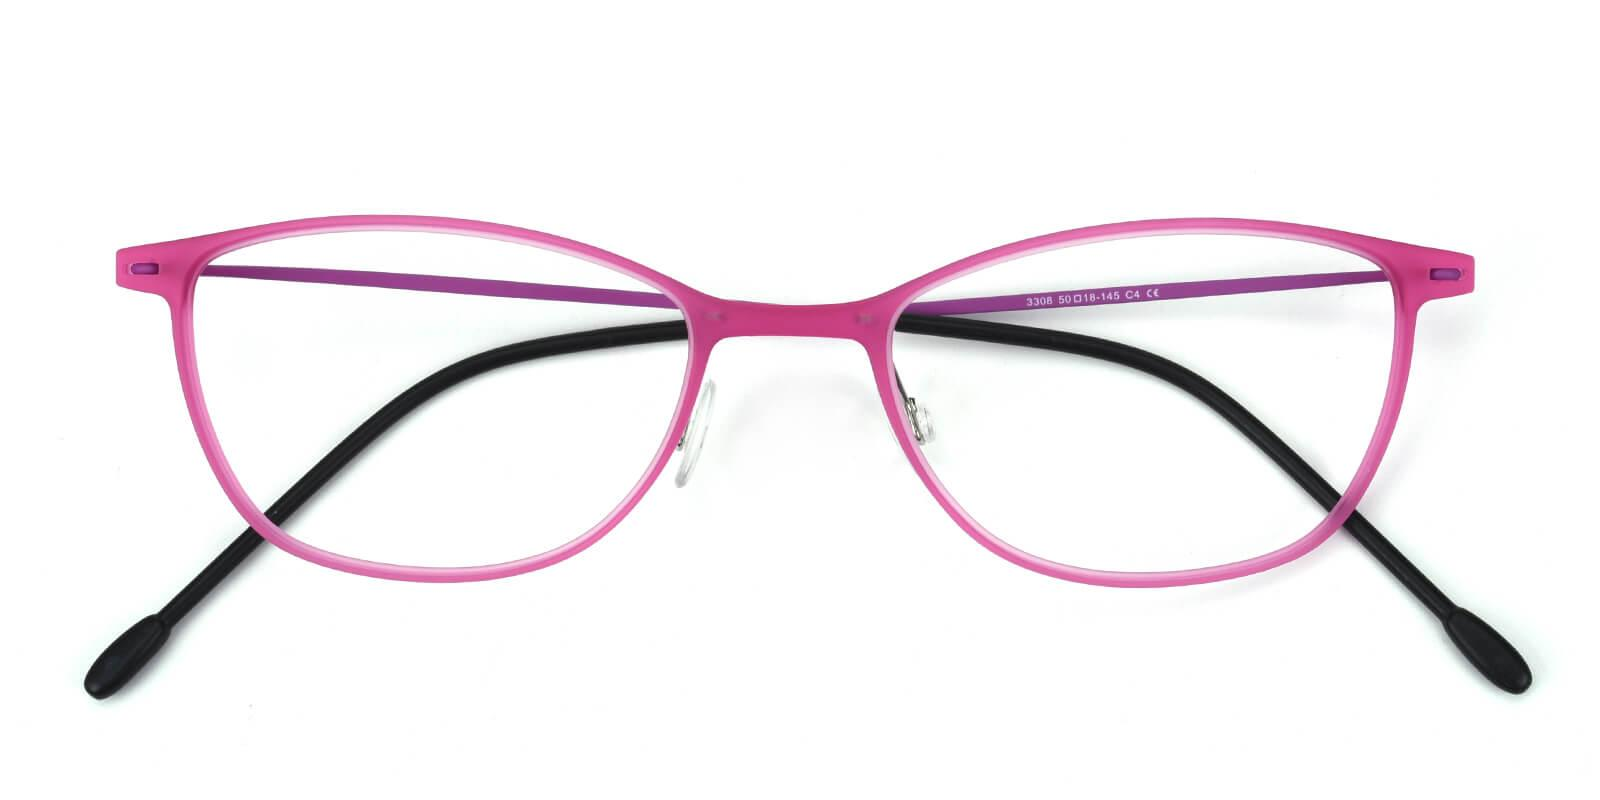 Pridgen-Pink-Rectangle / Cat-Combination-Eyeglasses-detail